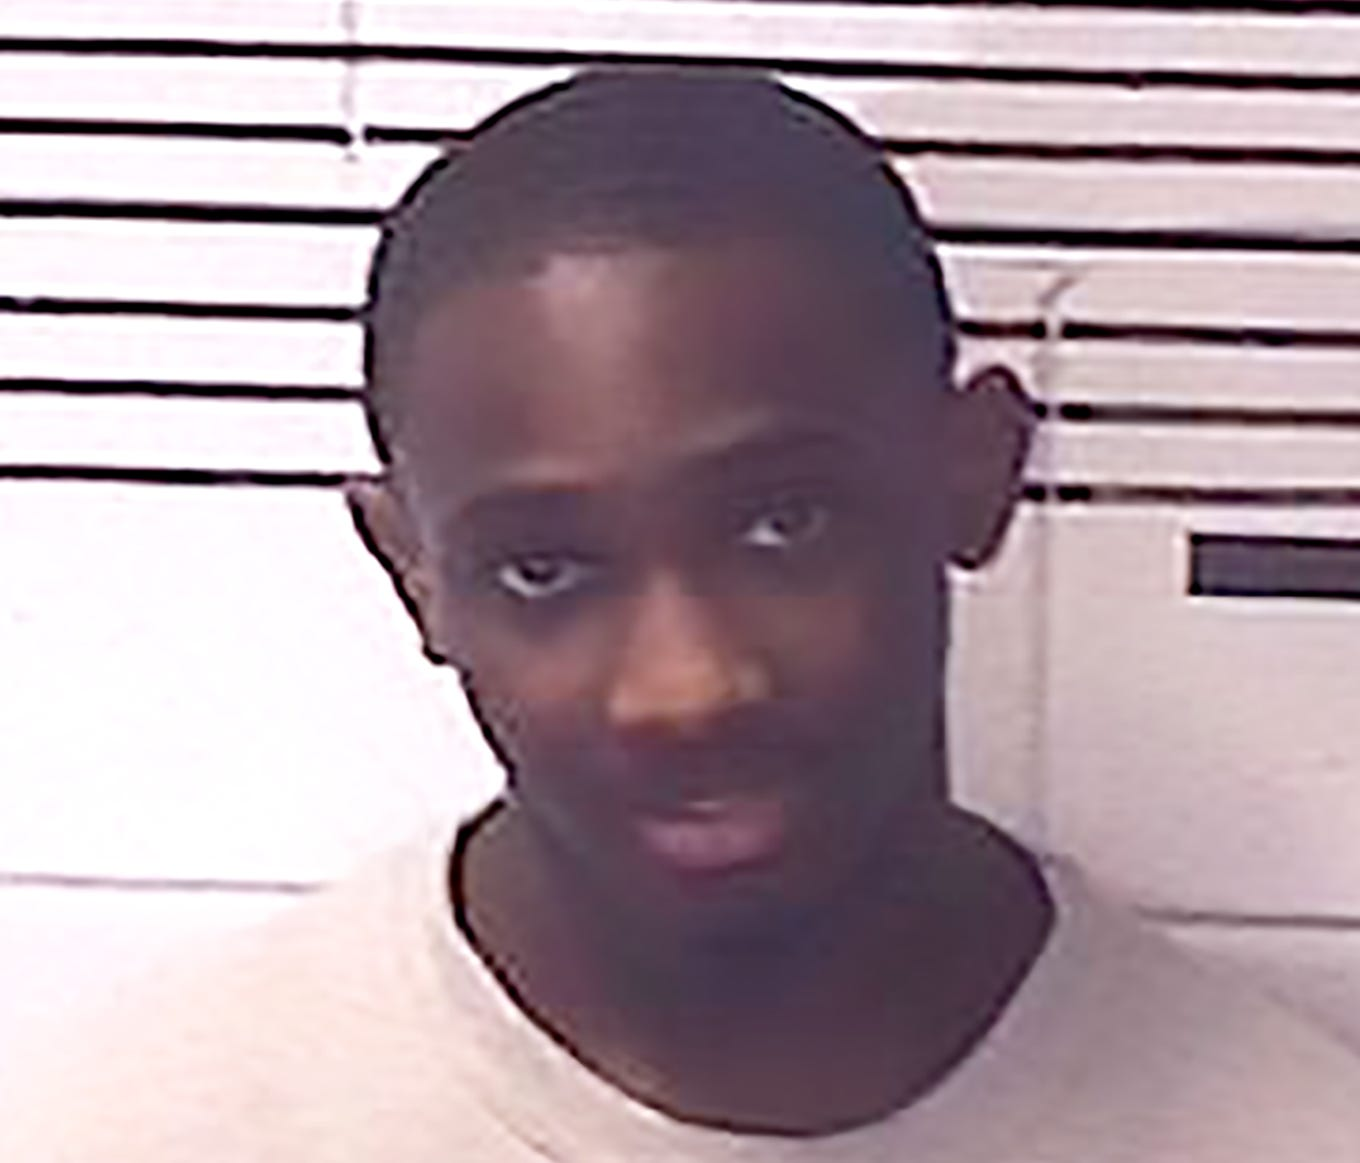 Lakeith Smith, 18, of Montgomery, Ala., was sentenced April 5, 2018, to 65 years in prison as an accomplice in crimes that included murder, burglary and theft.